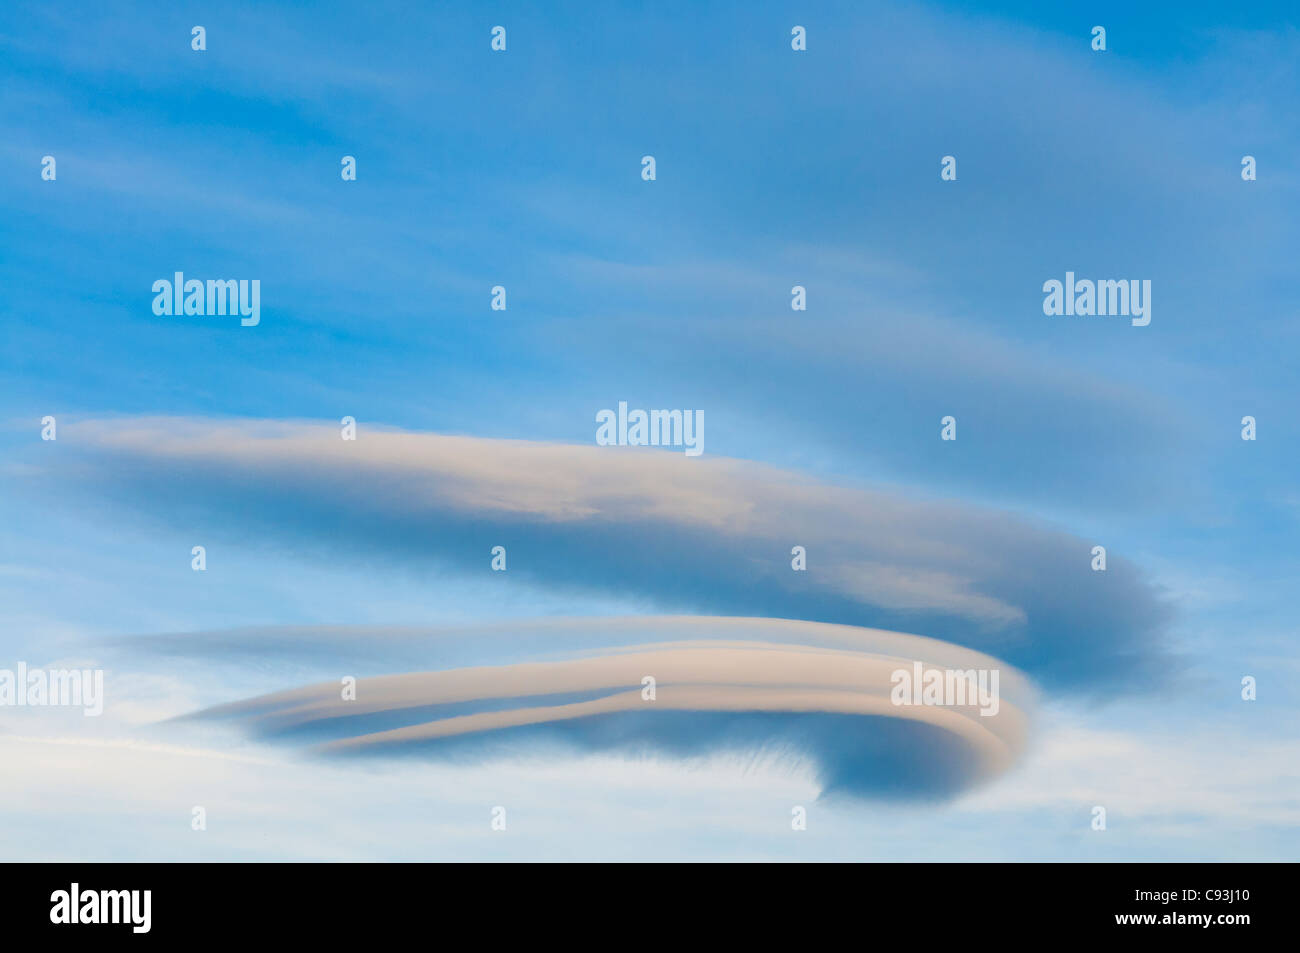 Lenticular clouds in sky. - Stock Image